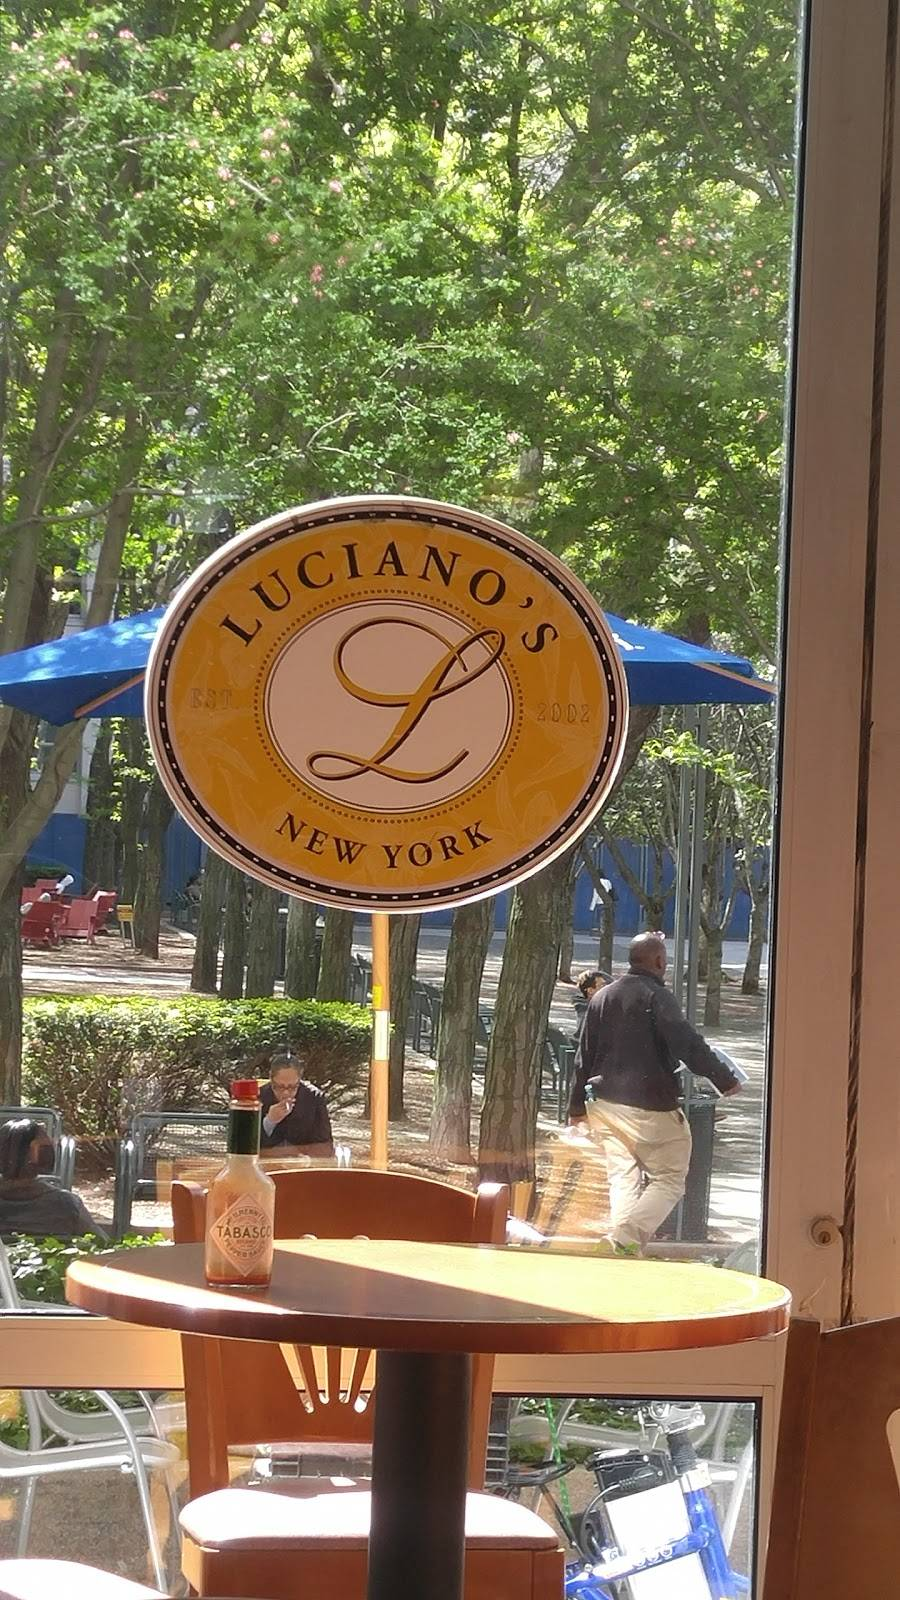 Lucianos | meal takeaway | 15 MetroTech Center, Brooklyn, NY 11201, USA | 7188556668 OR +1 718-855-6668